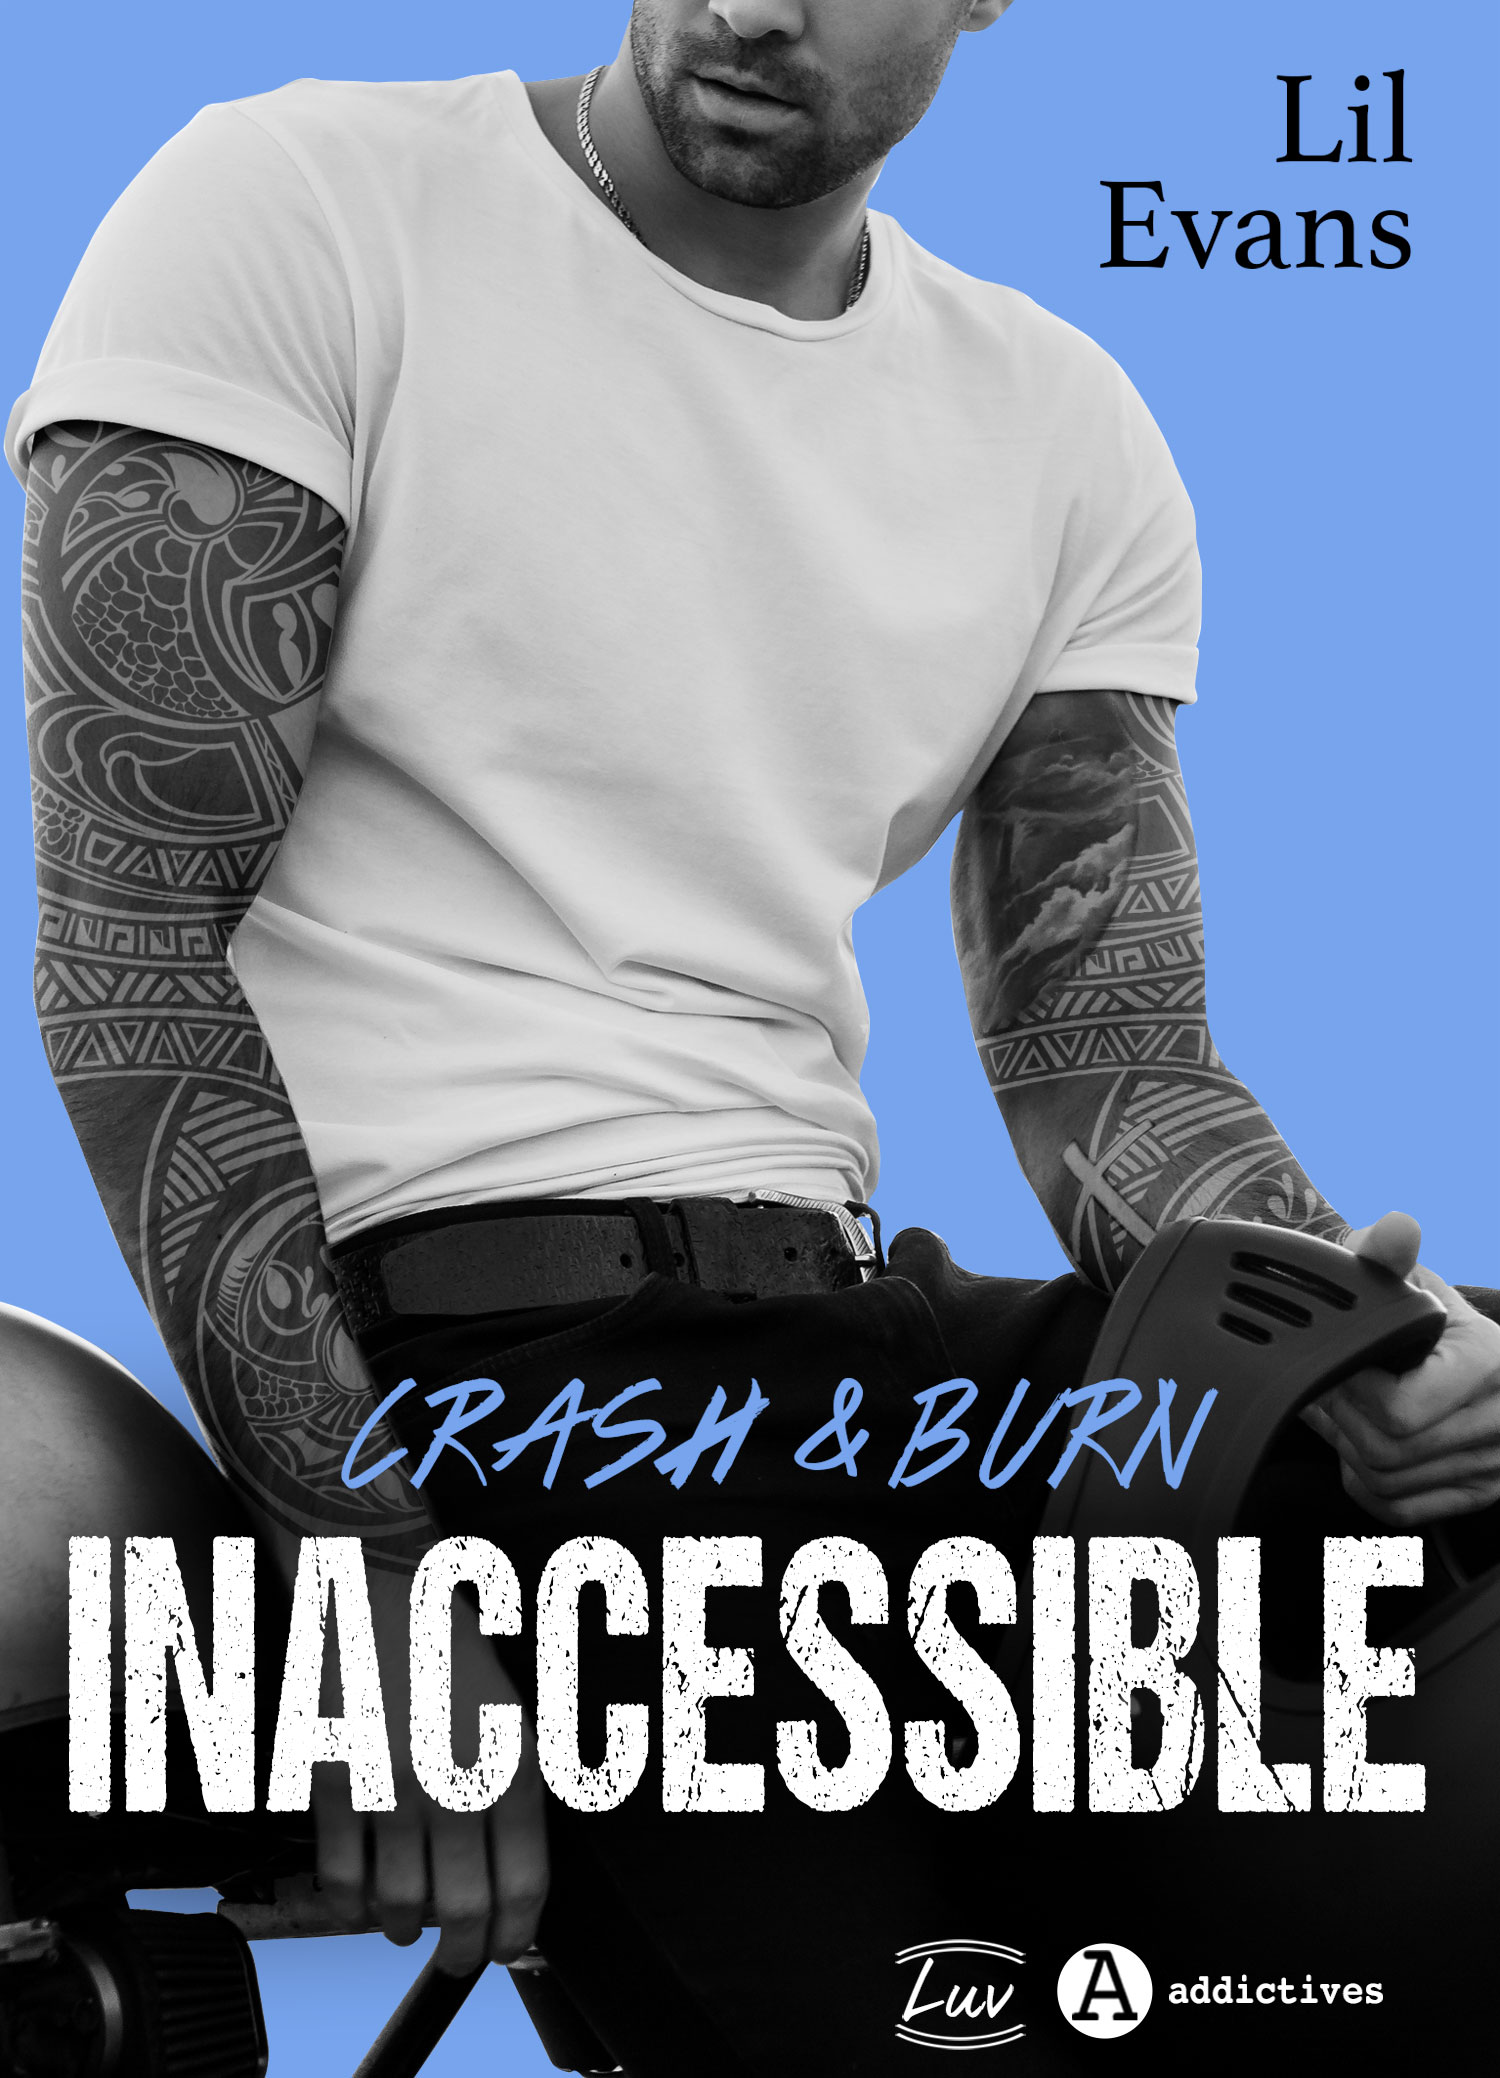 Inaccessible – Crash & Burn (teaser)